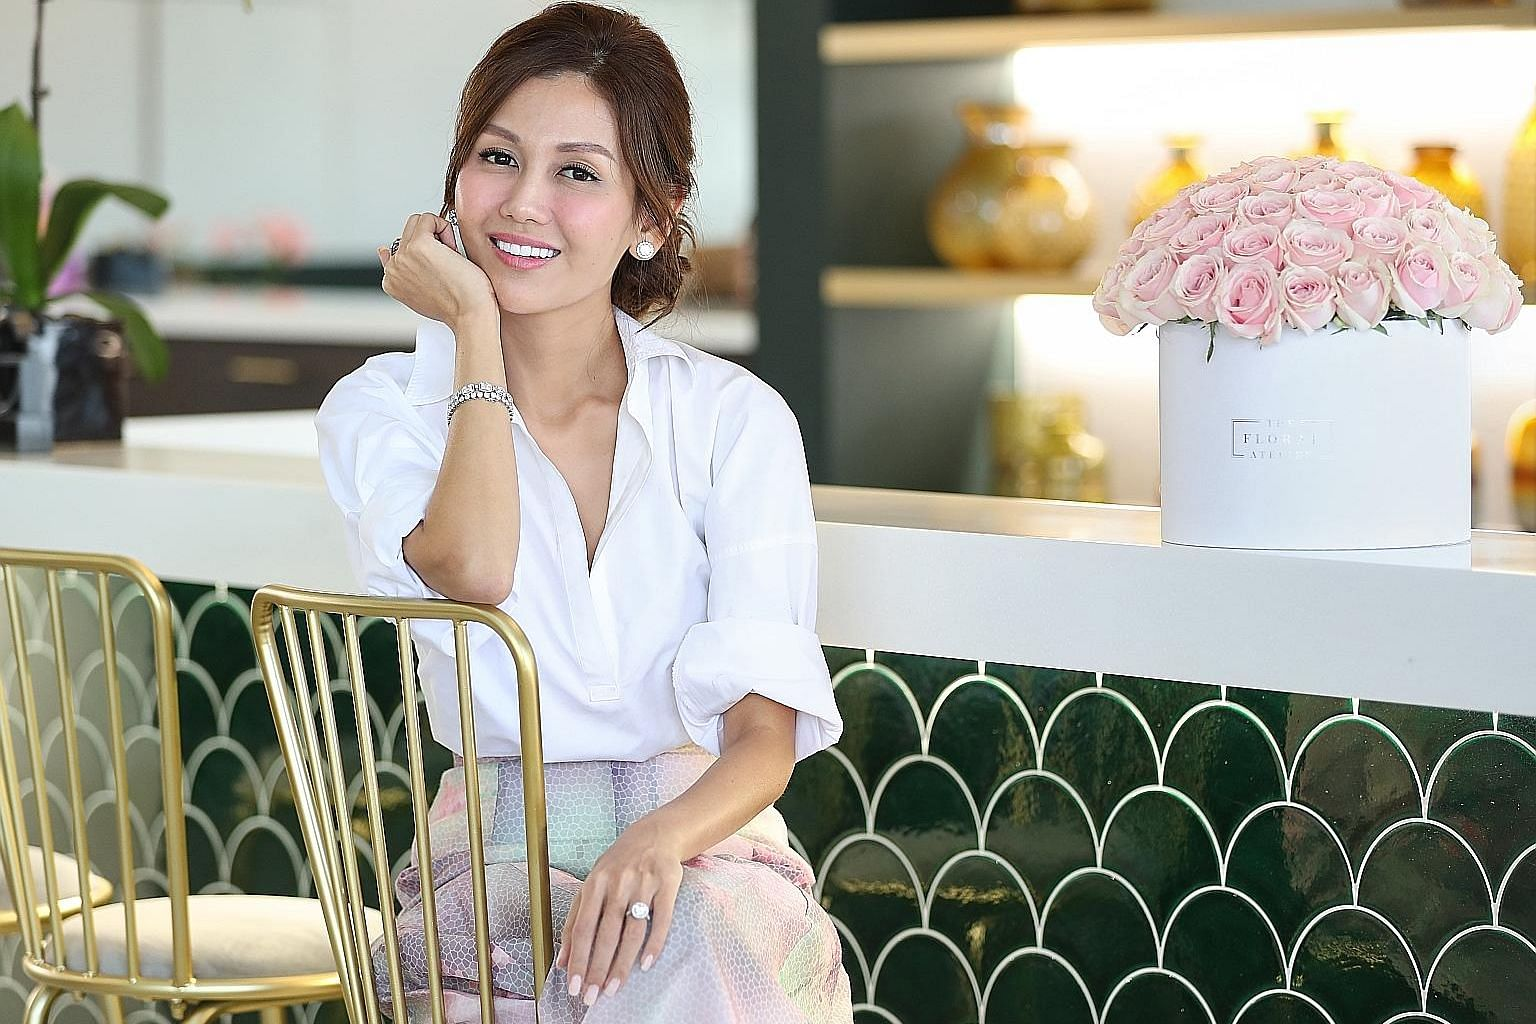 Ms Lelian Chew is beefing up her company's presence in Singapore by setting up its global headquarters in Delta House. The Atelier & Co will house her two businesses - The Wedding Atelier and The Floral Atelier.